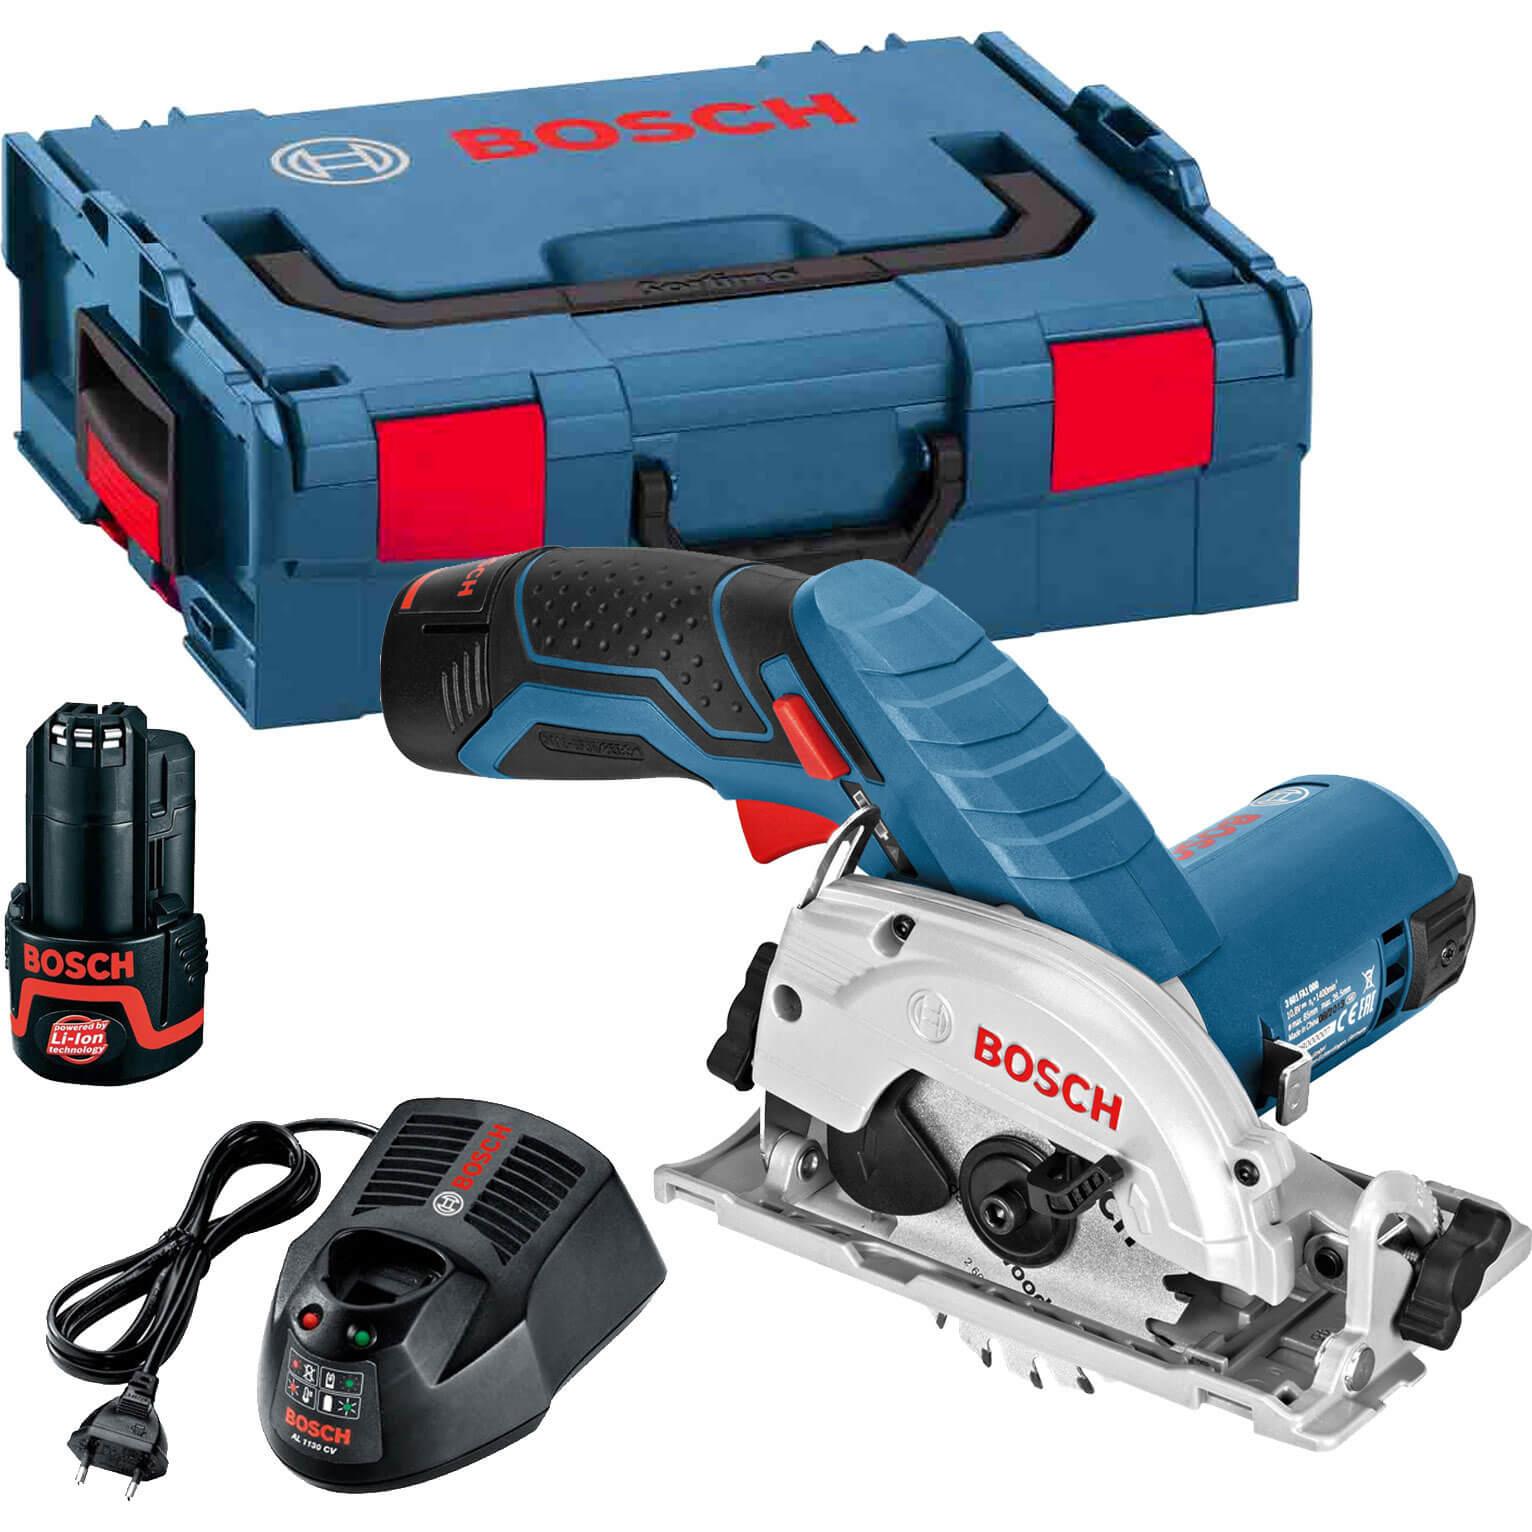 Image of Bosch GKS 12 V-LI 12v Cordless Circular Saw 2 x 2ah Li-ion Charger Case